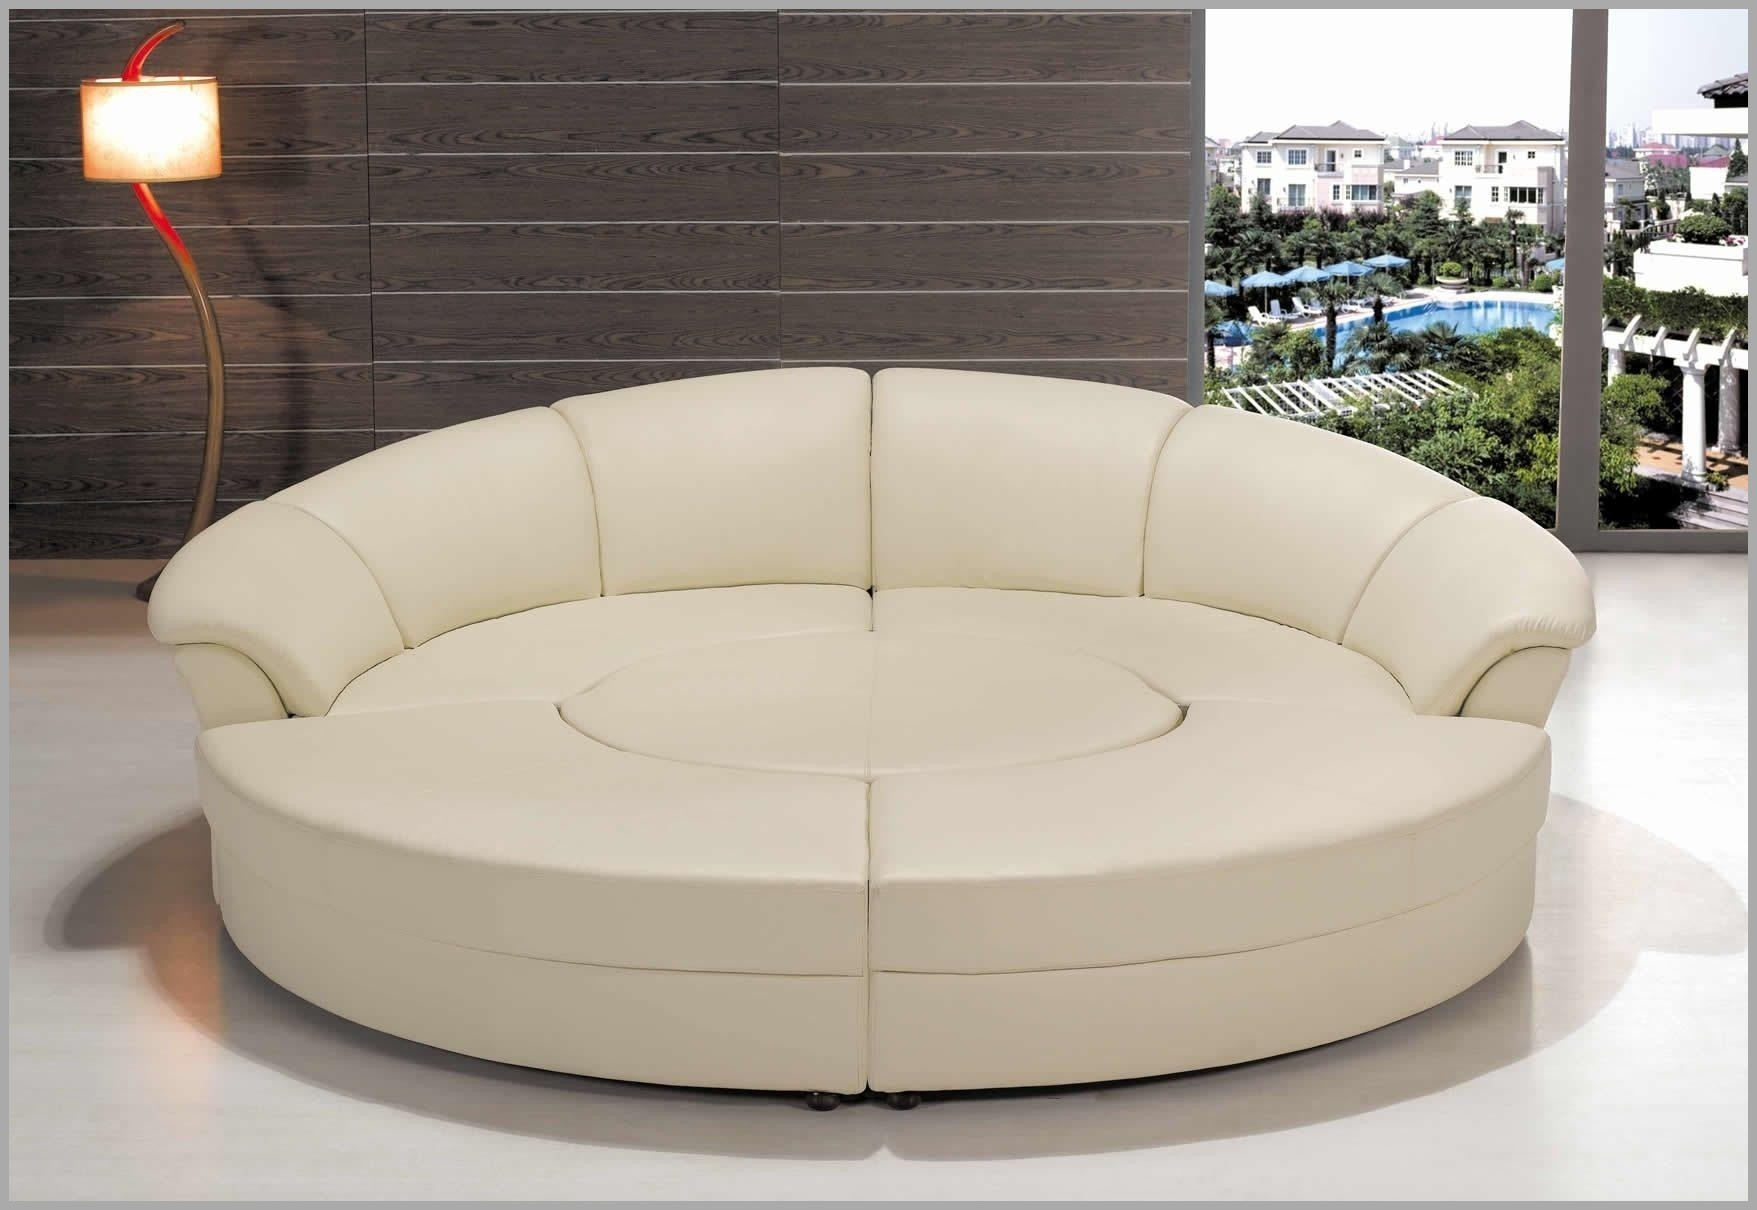 Round Sectional sofa Unique Fresh Idea to Round Sectional sofa Decor sofa Ideas Design